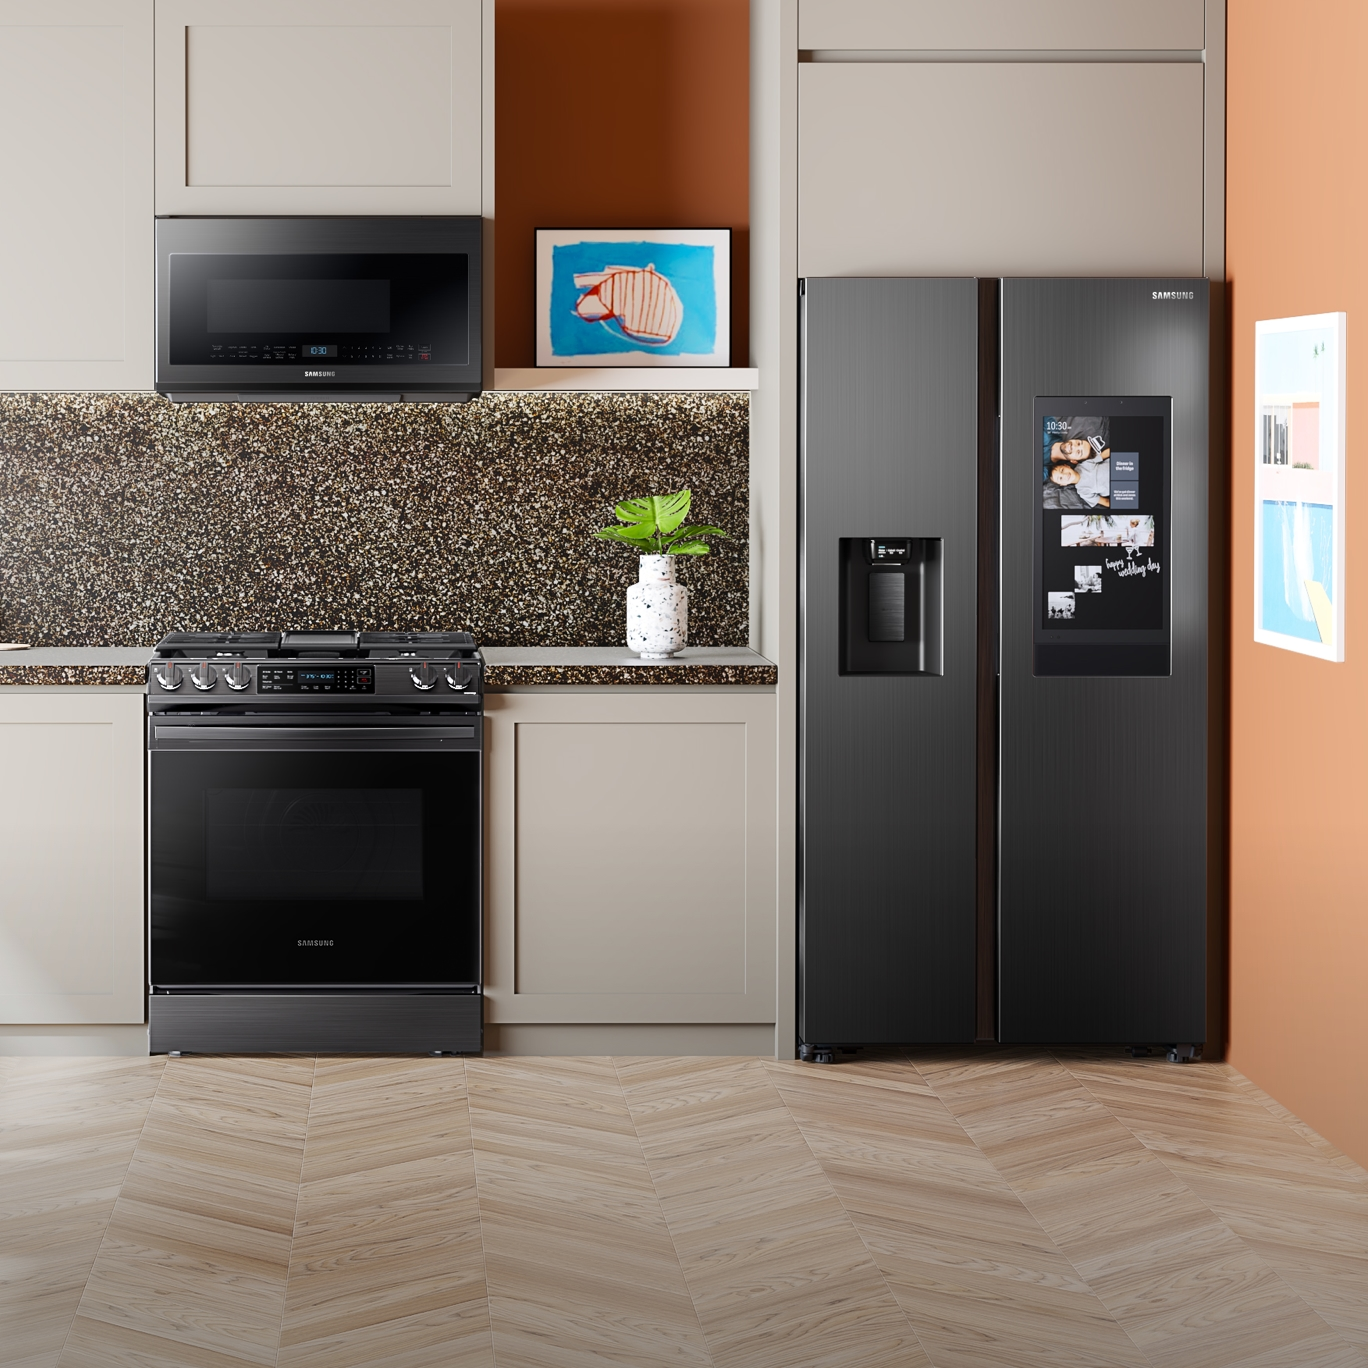 Create your dream kitchen and save